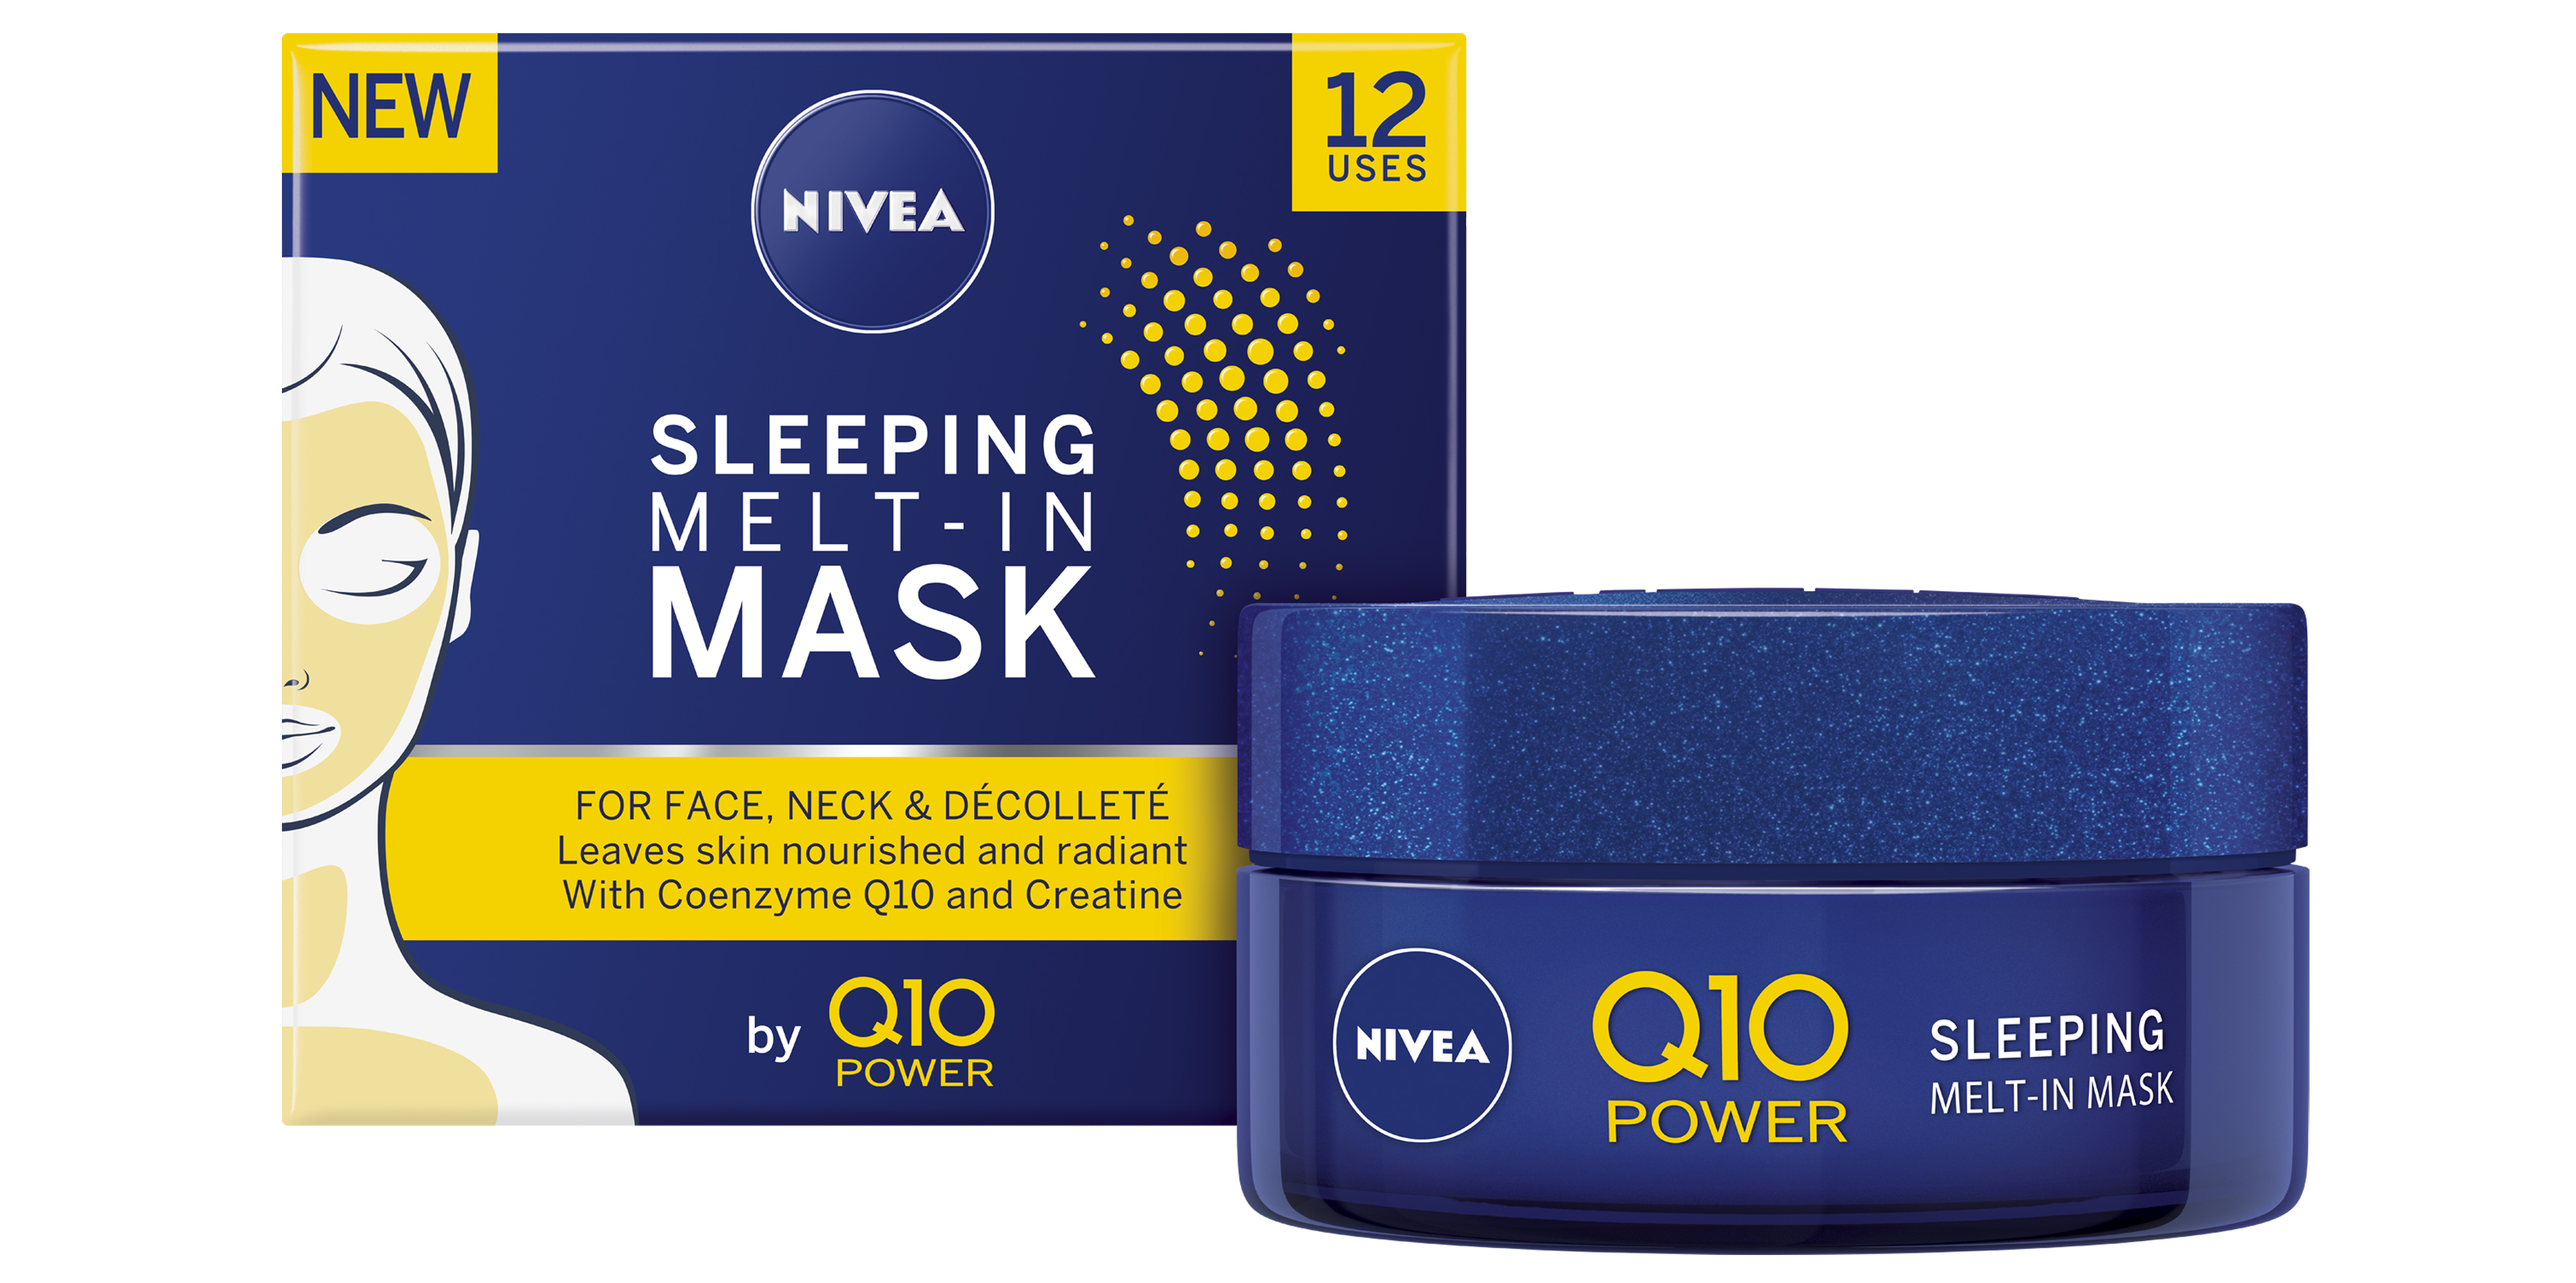 Nivea Sleeping Melt-In Mask